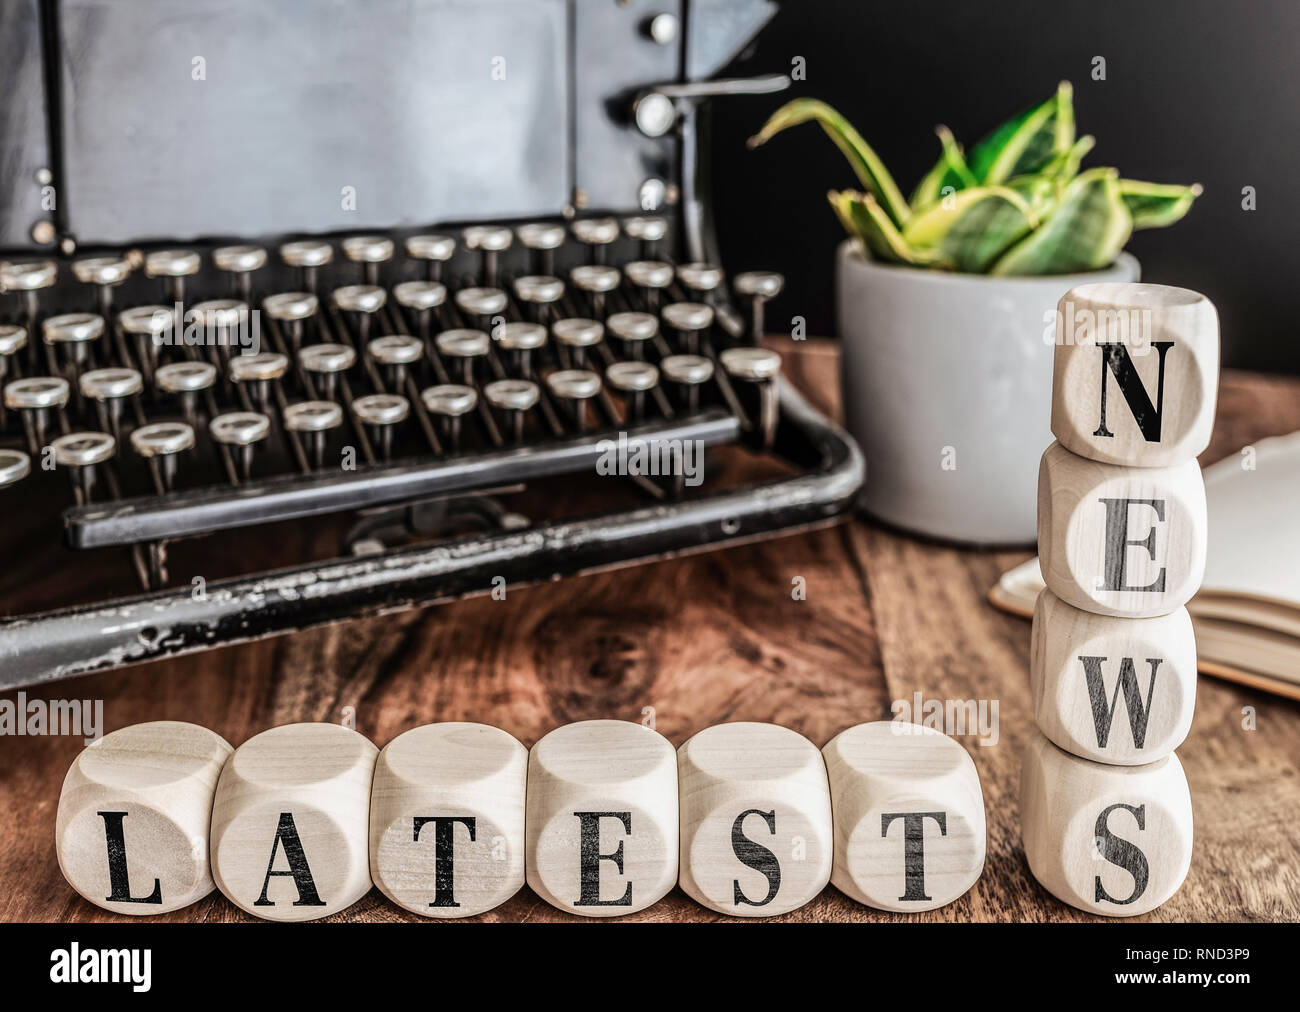 words LATEST NEWS on wooden blocks with vintage typewriter and potted plant in background - Stock Image